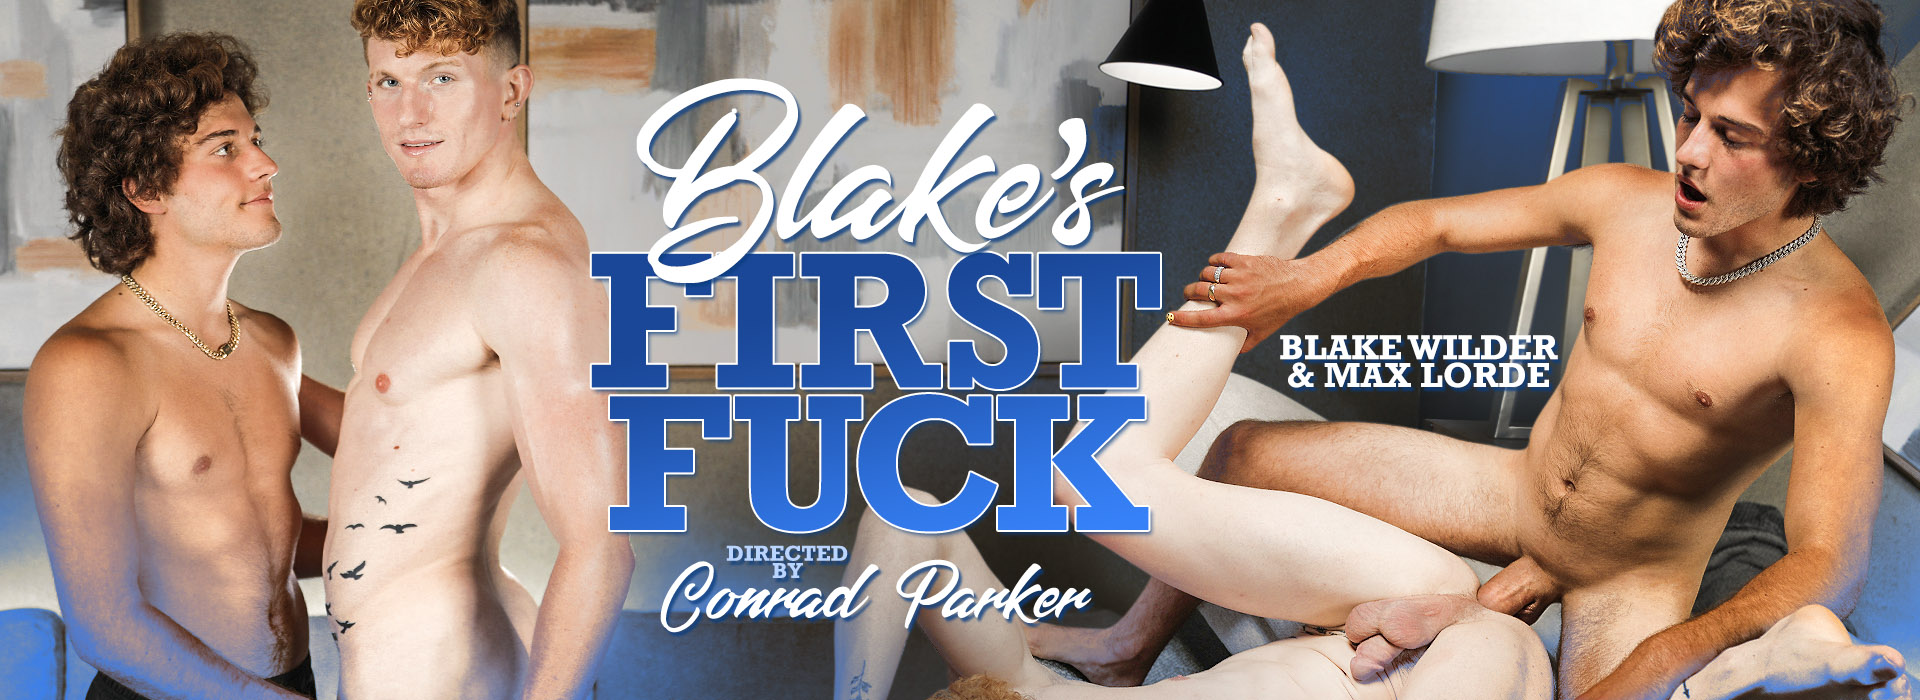 Stag Collective Blake's First Fuck Featuring Blake Wilder and Max Lorde